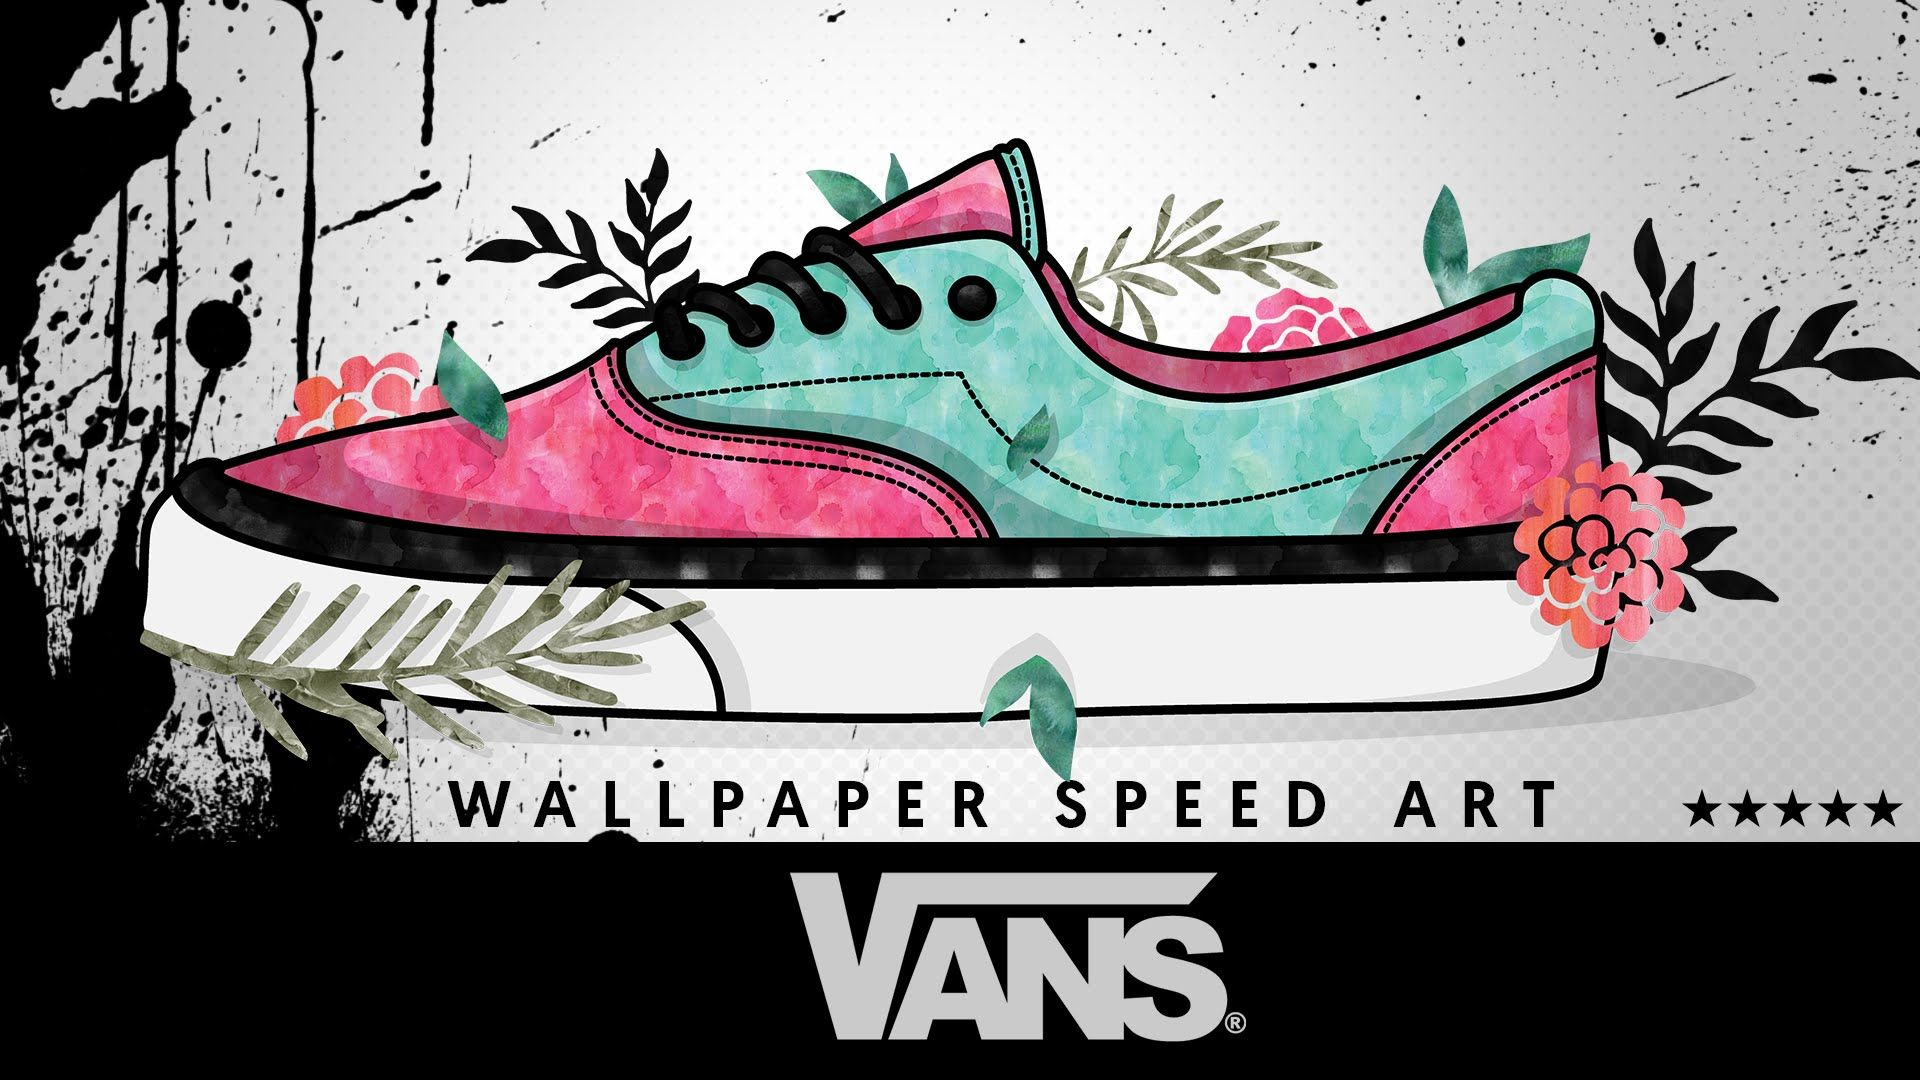 Zapatos Vans Wallpaper HD